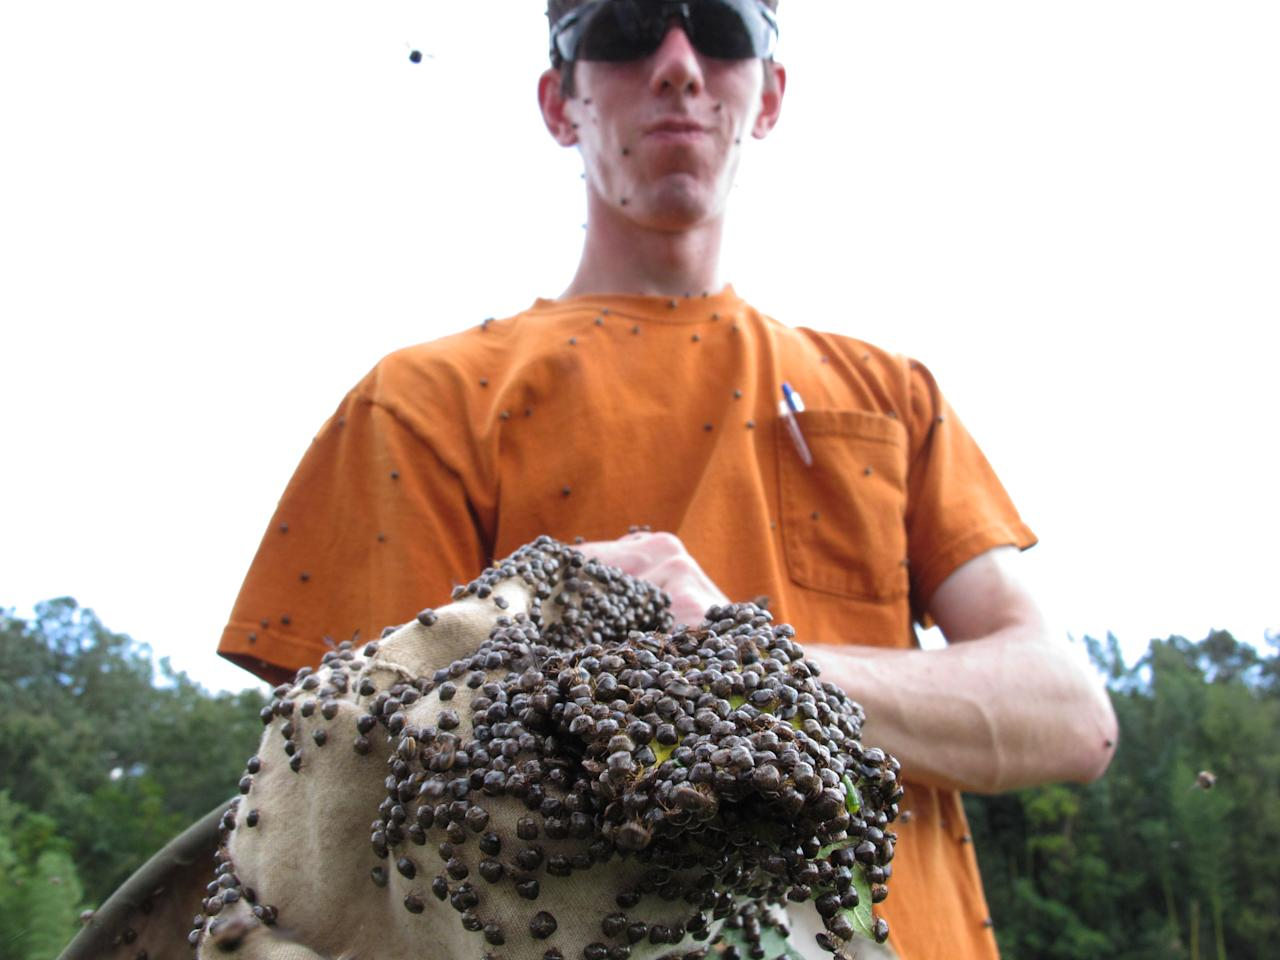 """In this Sept. 30, 2011 photo, Clemson University doctoral student Nick Seiter shows a sweep net filled with """"kudzu bugs"""" caught in a test plot in Blackville, S.C. Seiter is studying the invasive Asian bug, which is wreaking havoc on soybean crops. (AP Photo/Allen Breed)"""